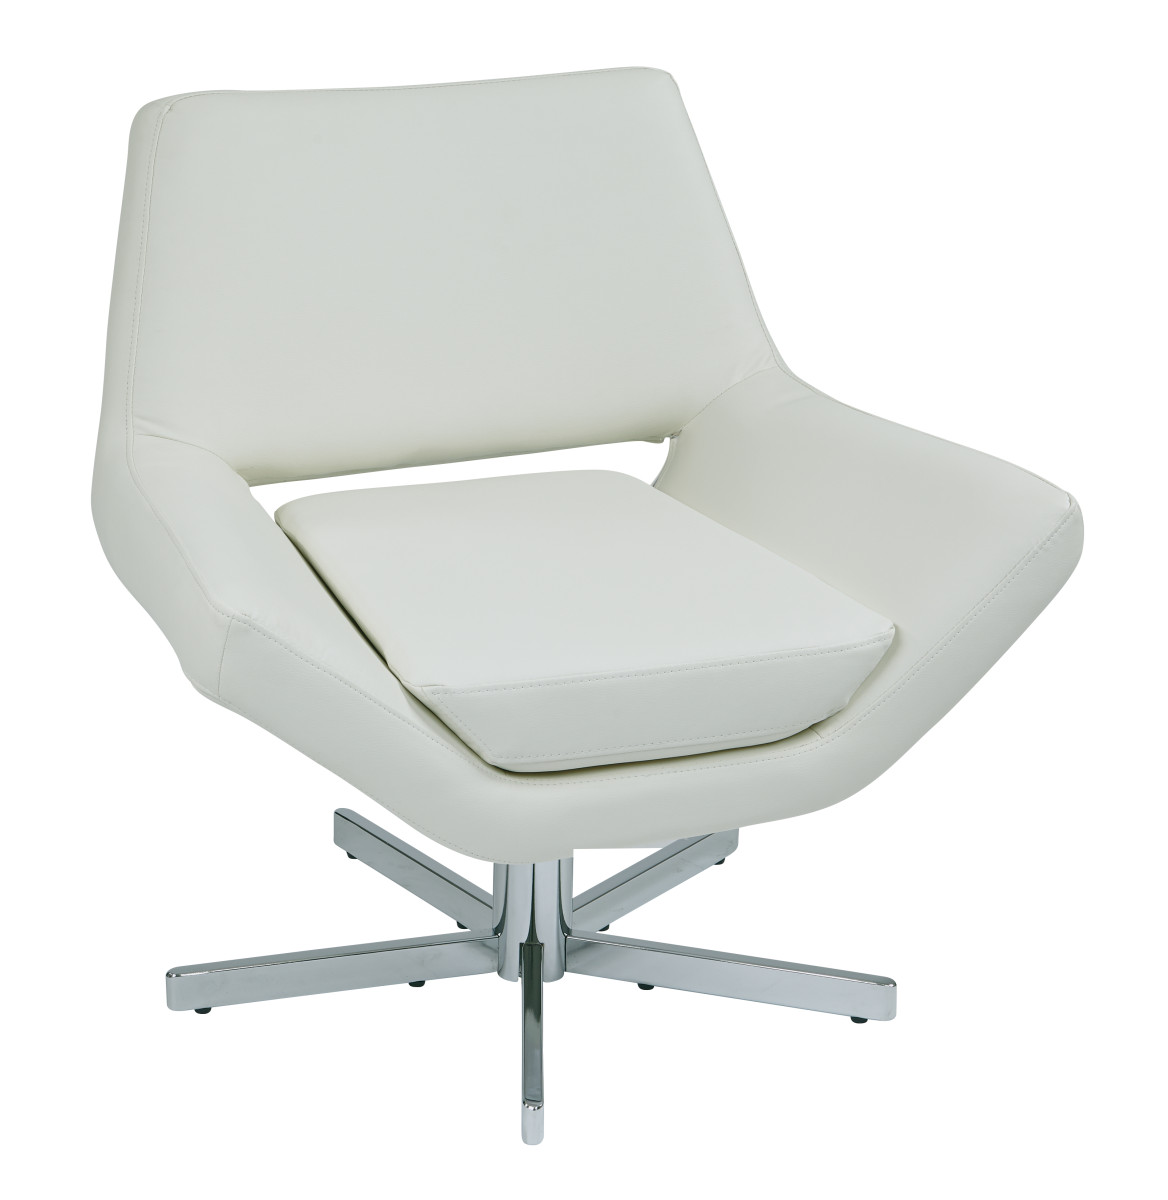 White Modern Chair Quotyield 31 Quot Quot Modern White Faux Leather Lounge Chair With